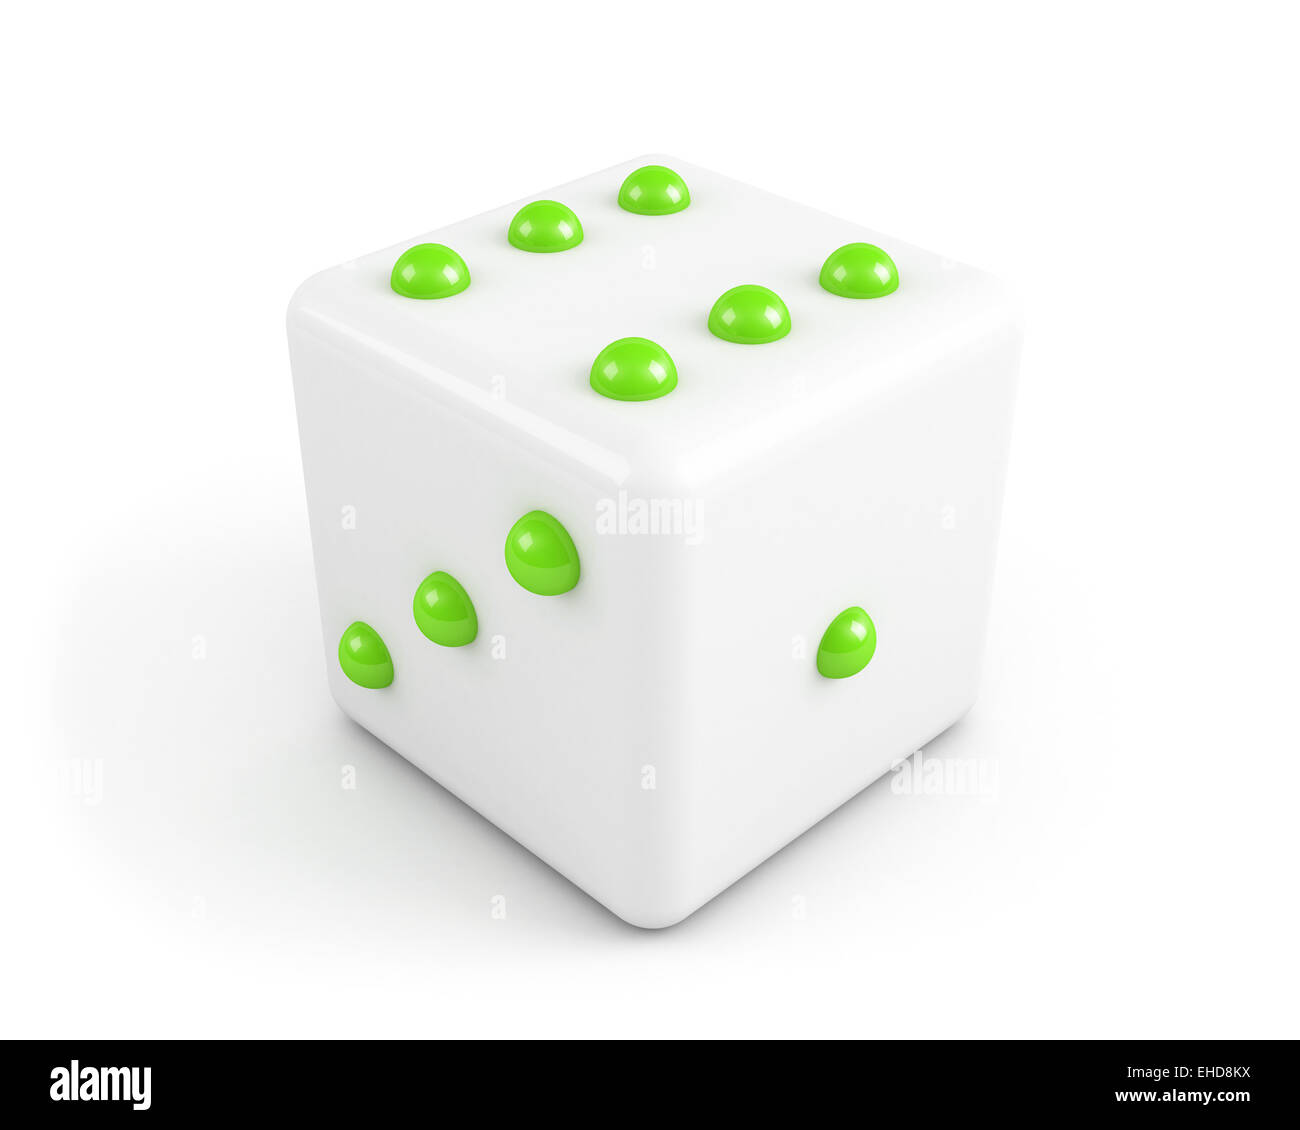 dice with bright green dots - Stock Image